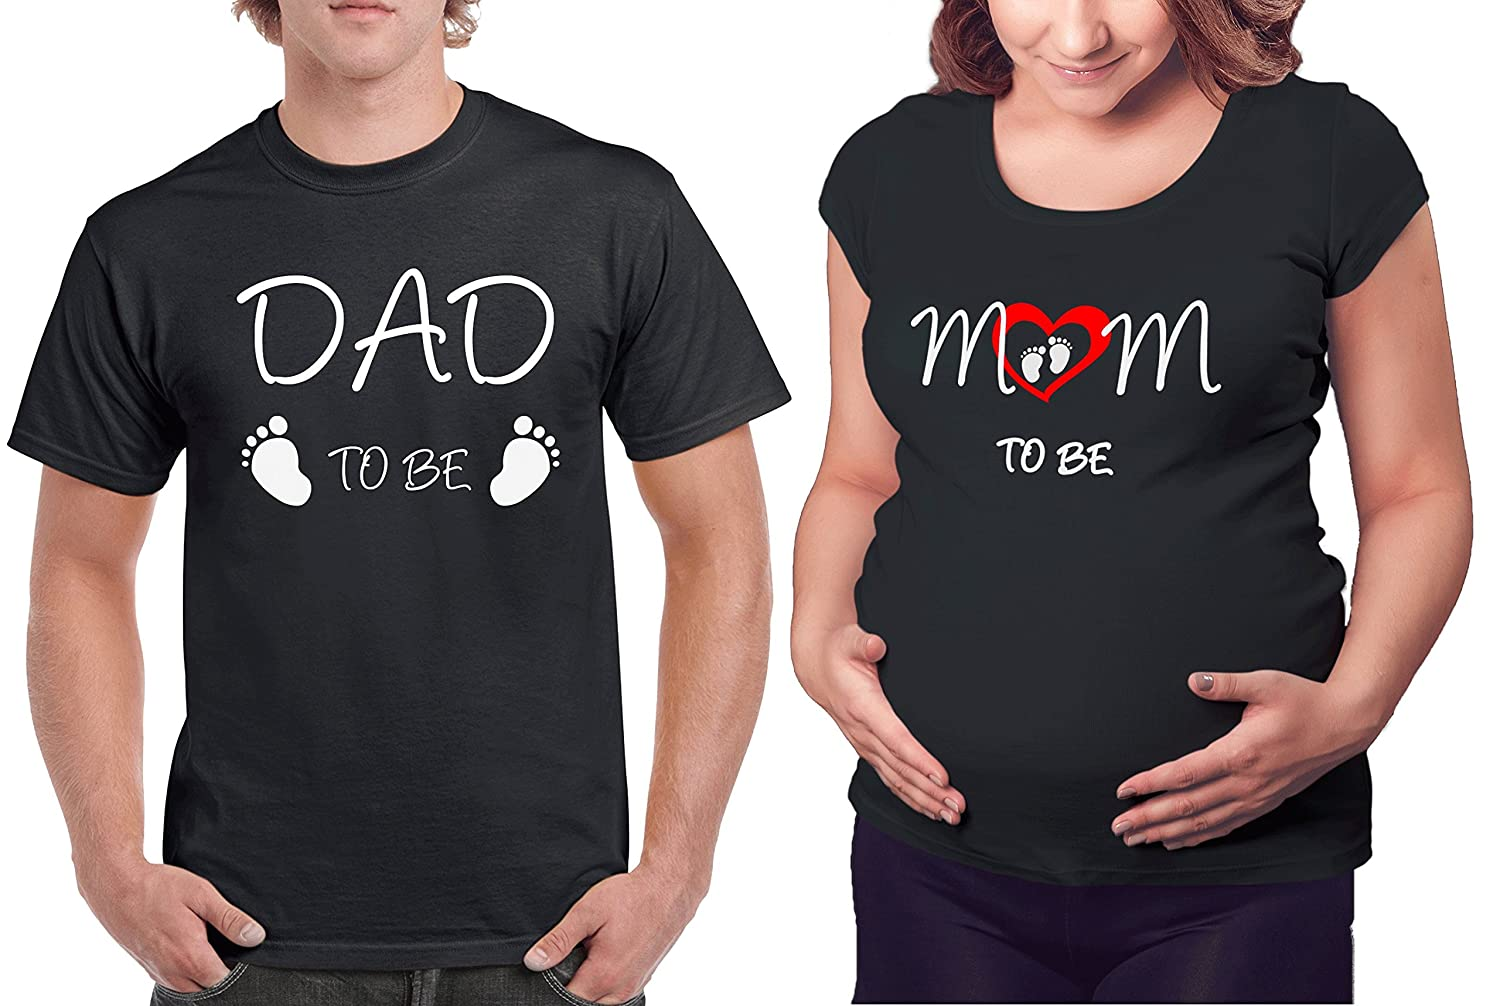 af59771dc Amazon.com: Matching Maternity Couple Shirts - Dad & Mom to be T Shirt -  Pregnancy Clothes: Clothing